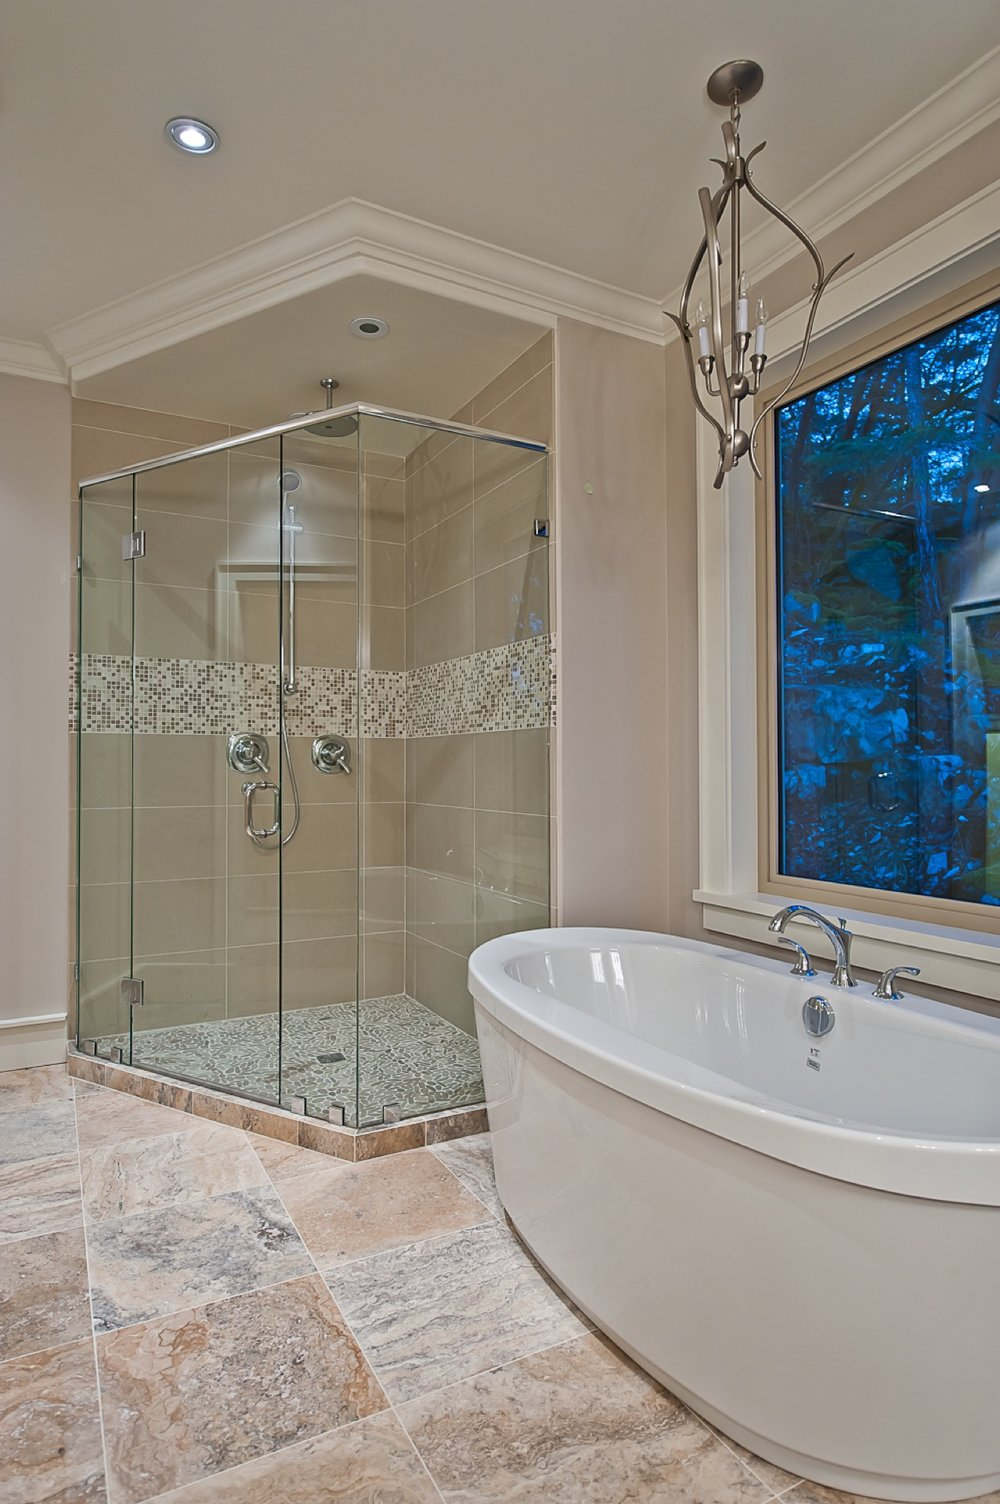 Paul Dabbs Custom Homes - Bonnington 25.jpg